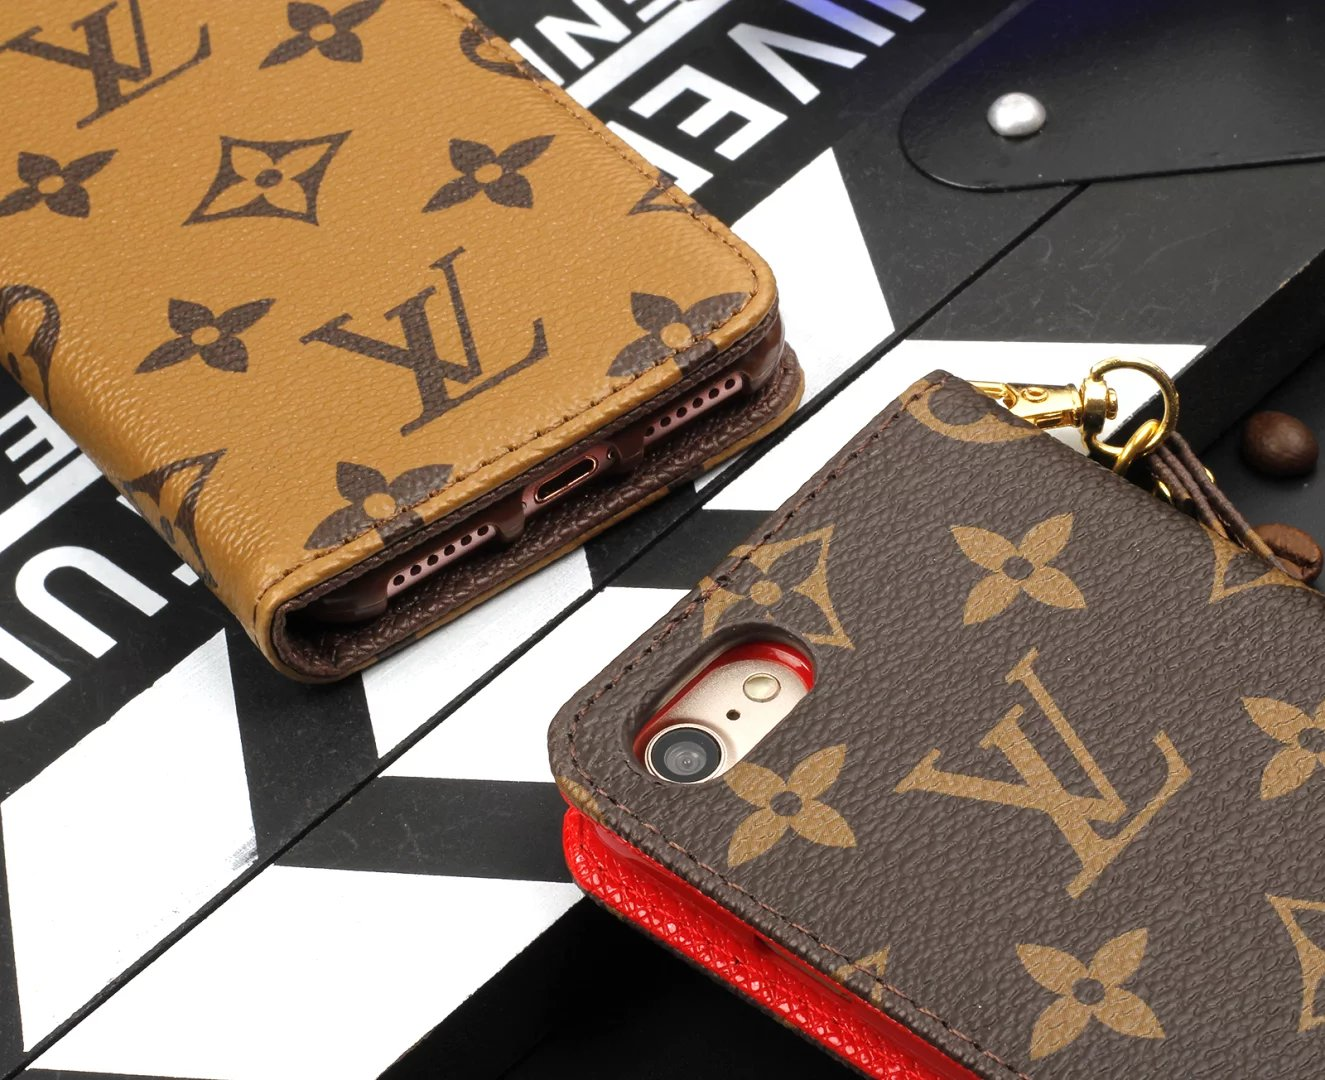 iphone hüllen shop iphone hülle selbst designen Louis Vuitton iphone7 Plus hülle handyhülle individuell gestalten handy flip ca7 iphone 7 Plus weiße iphone hülle hülle iphone 7 Plus ilikon handy cover gestalten iphone handyhüllen 7lber erstellen